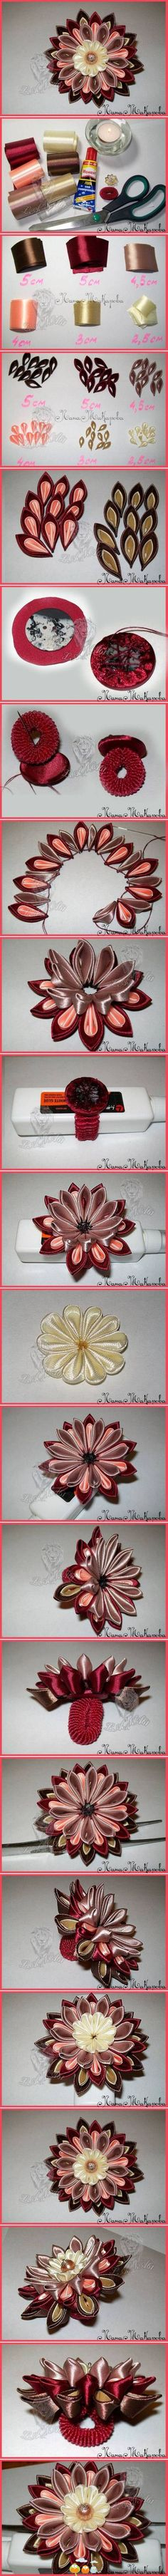 Ribbon flower tutorial multi-colored